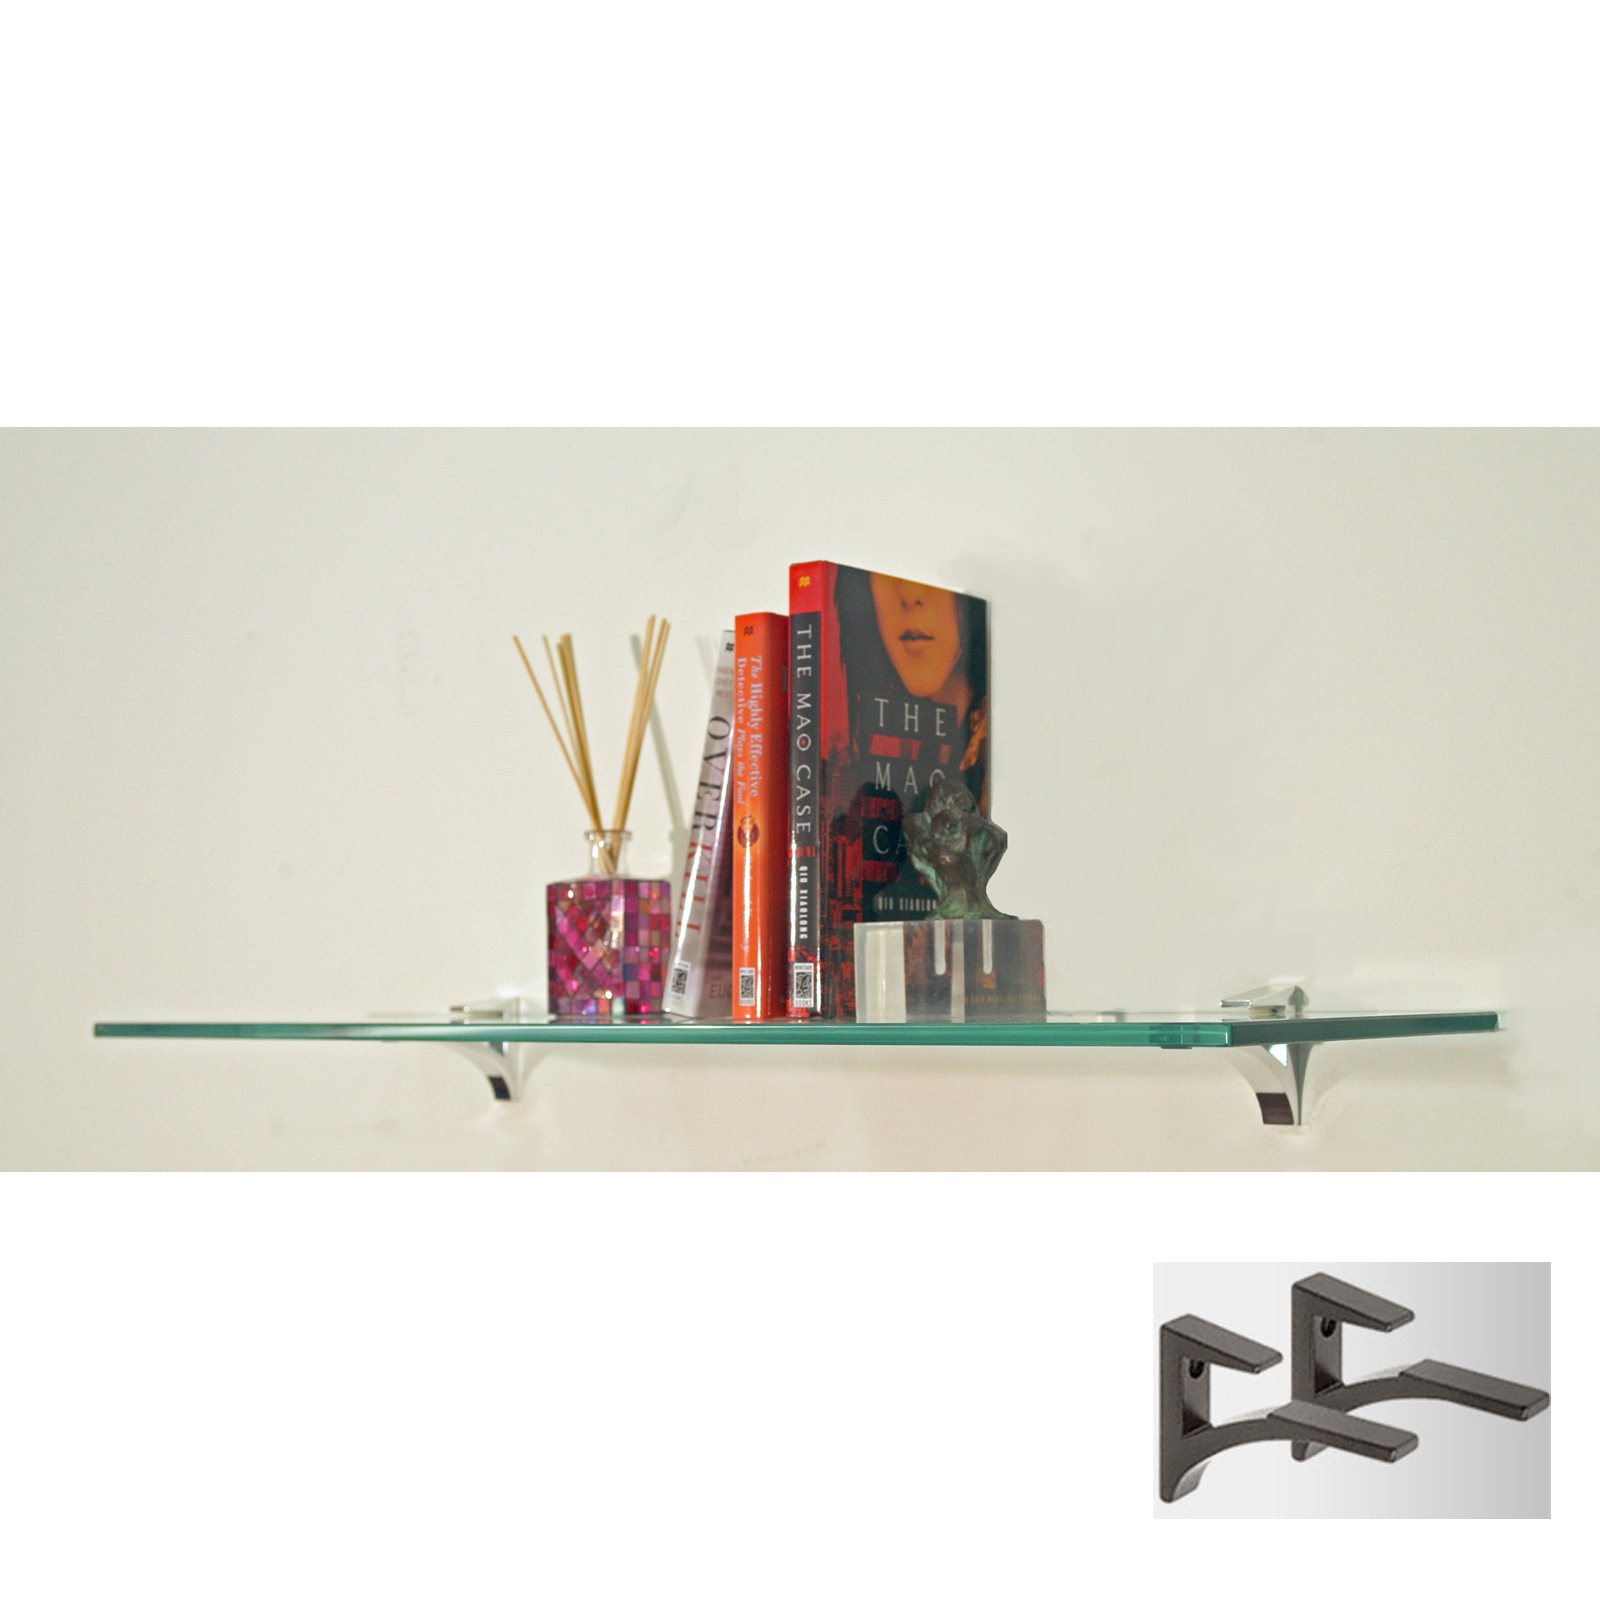 Awesome 12 Inch Wide Wall Shelf Part - 14: 12 Inch Cardinal Tempered Glass Shelf - Chrome Price: $61.99 - $94.99